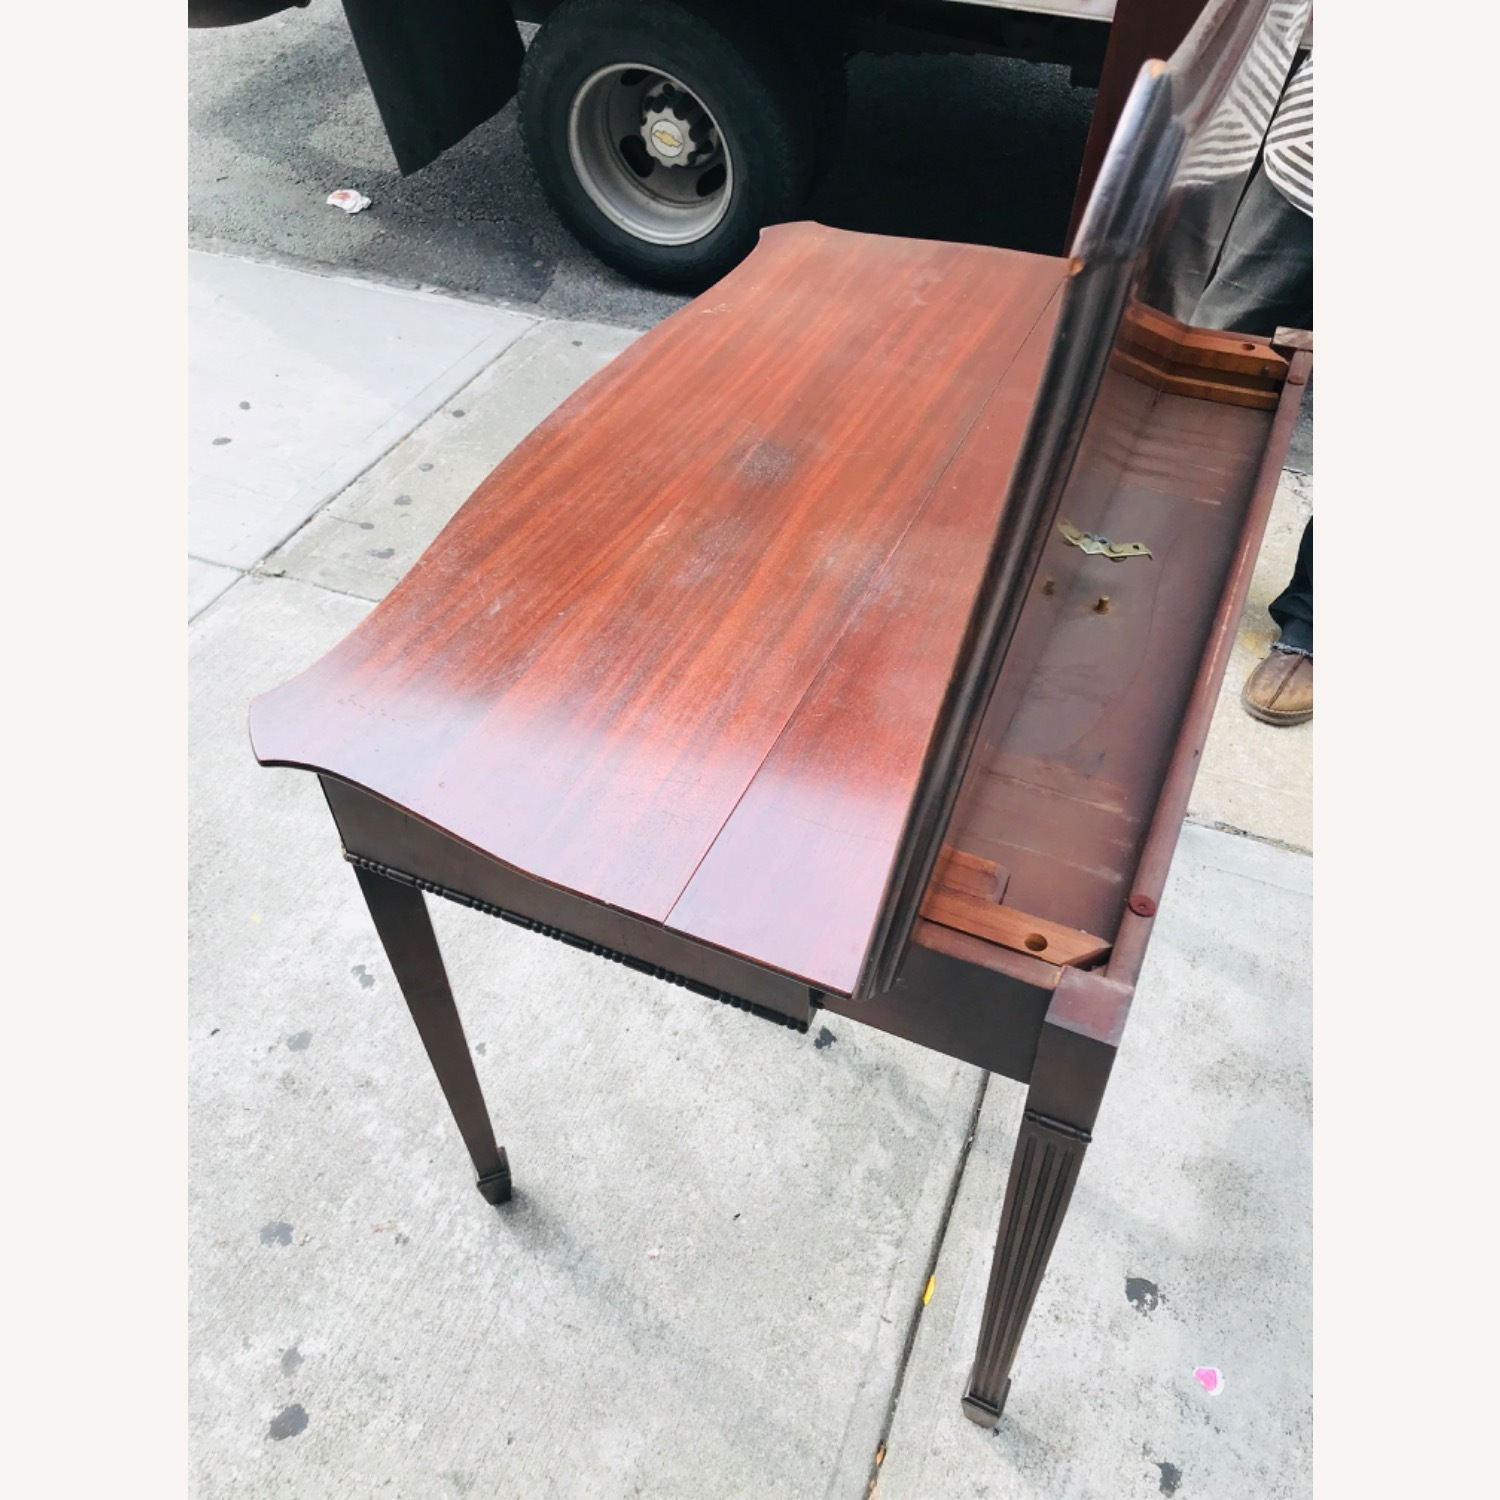 Antique 1920s Mahogany Table w/3 Leaves  - image-29